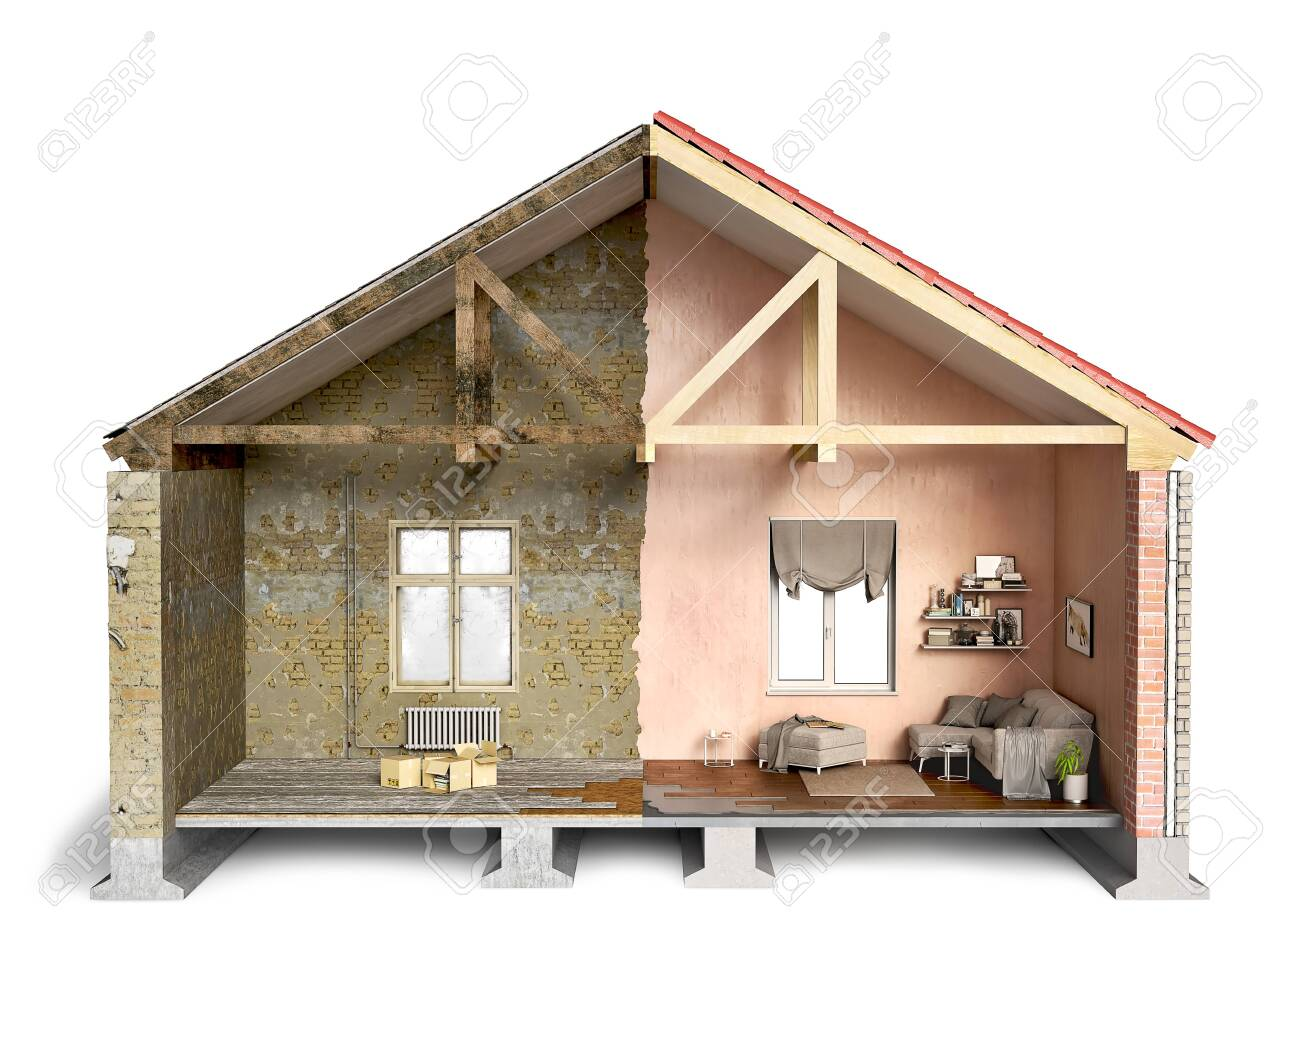 Half-old and half-new house, cross-section, 3d illustration - 148431742